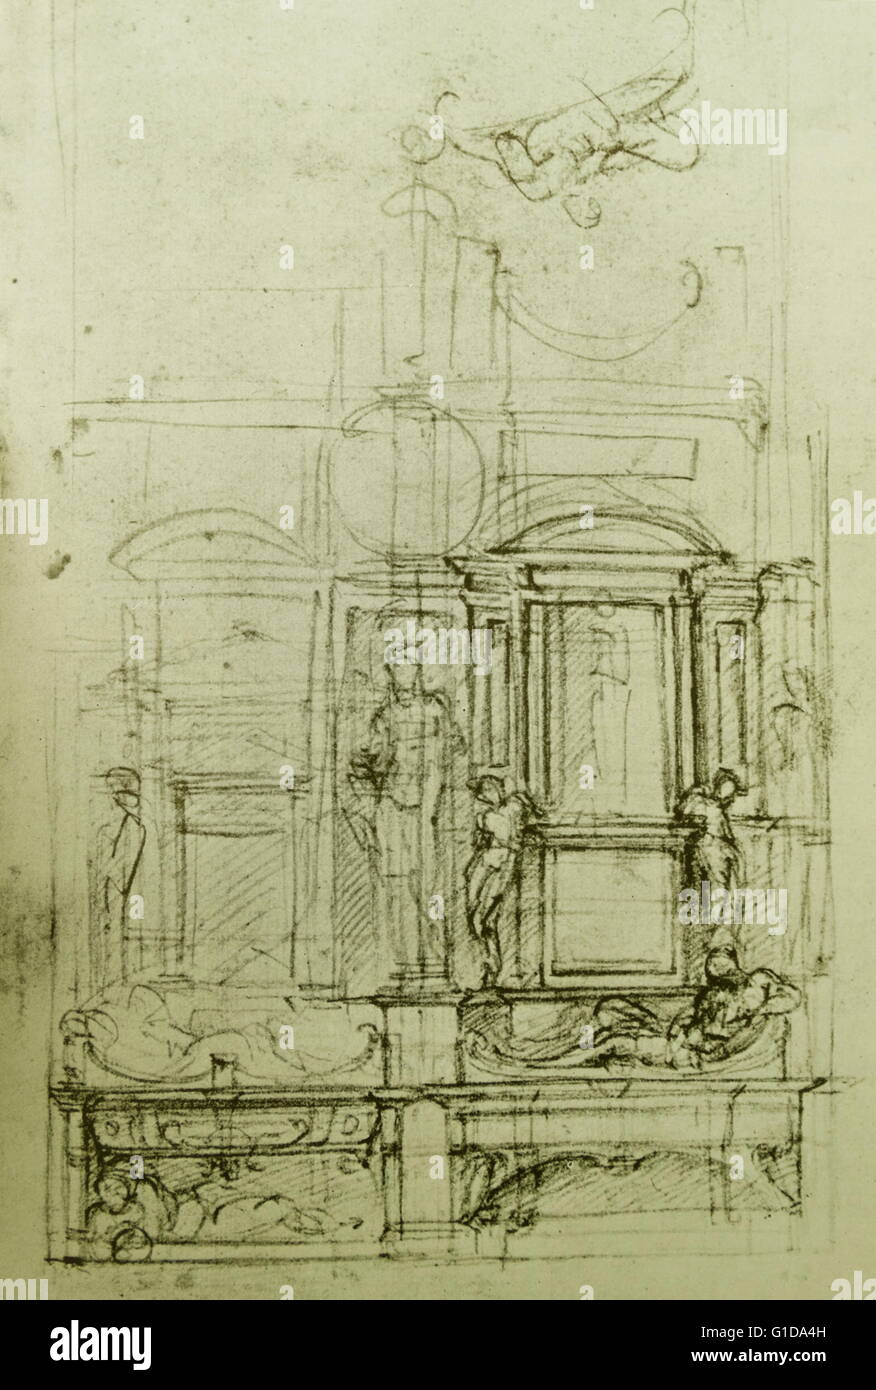 Michelangelo sketch for an architectural feature. Michelangelo Buonarroti 1475-1564; renaissance architect; engineer; - Stock Image